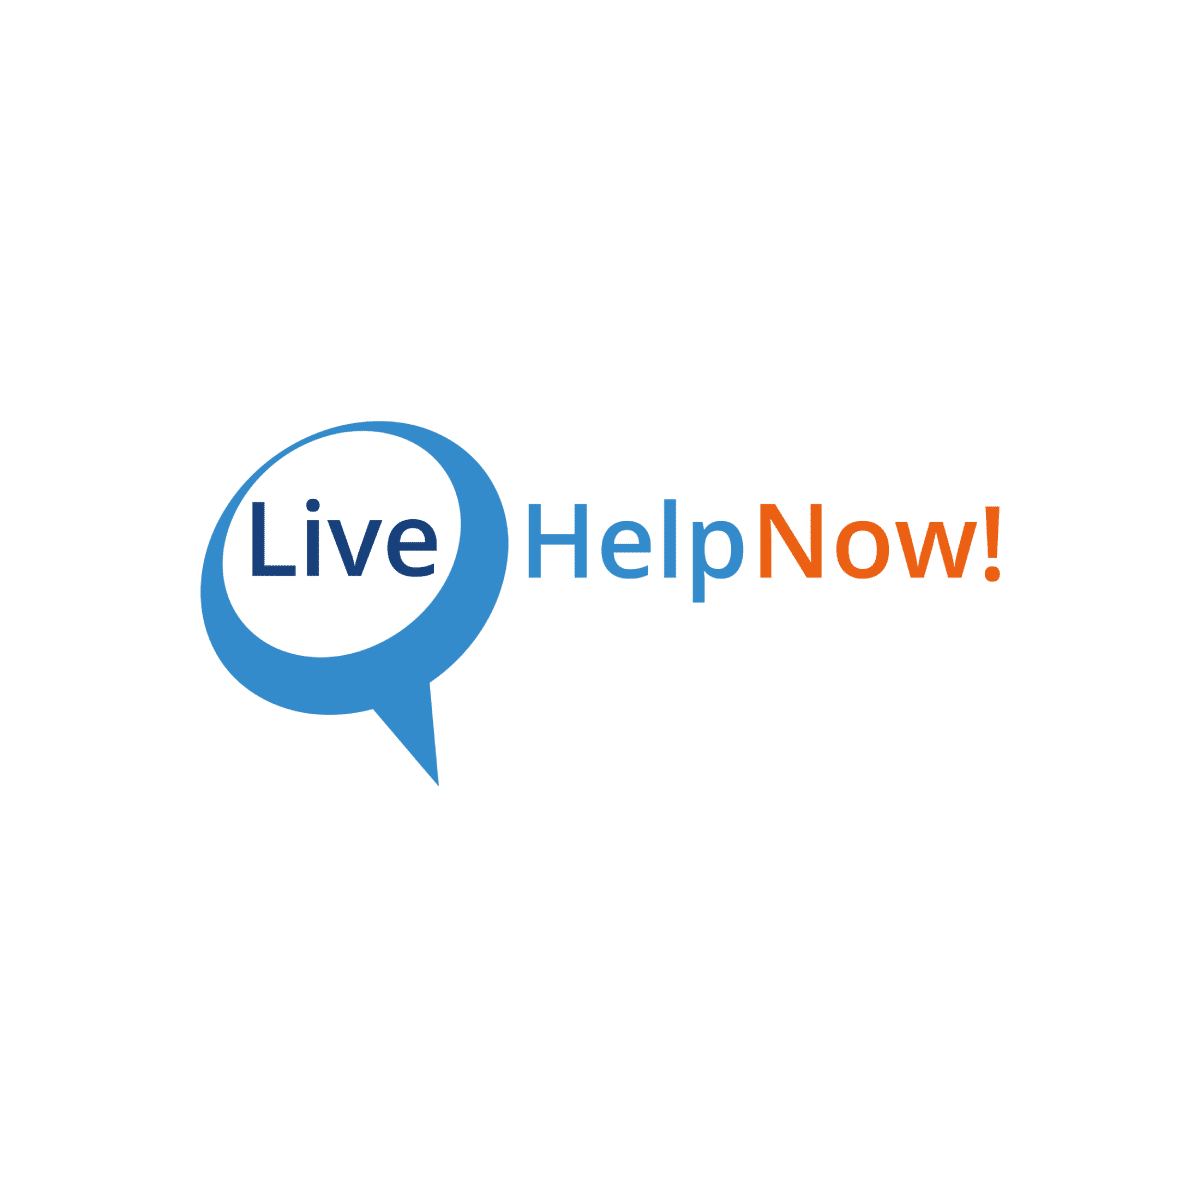 LiveHelpNow - Live Chat Software